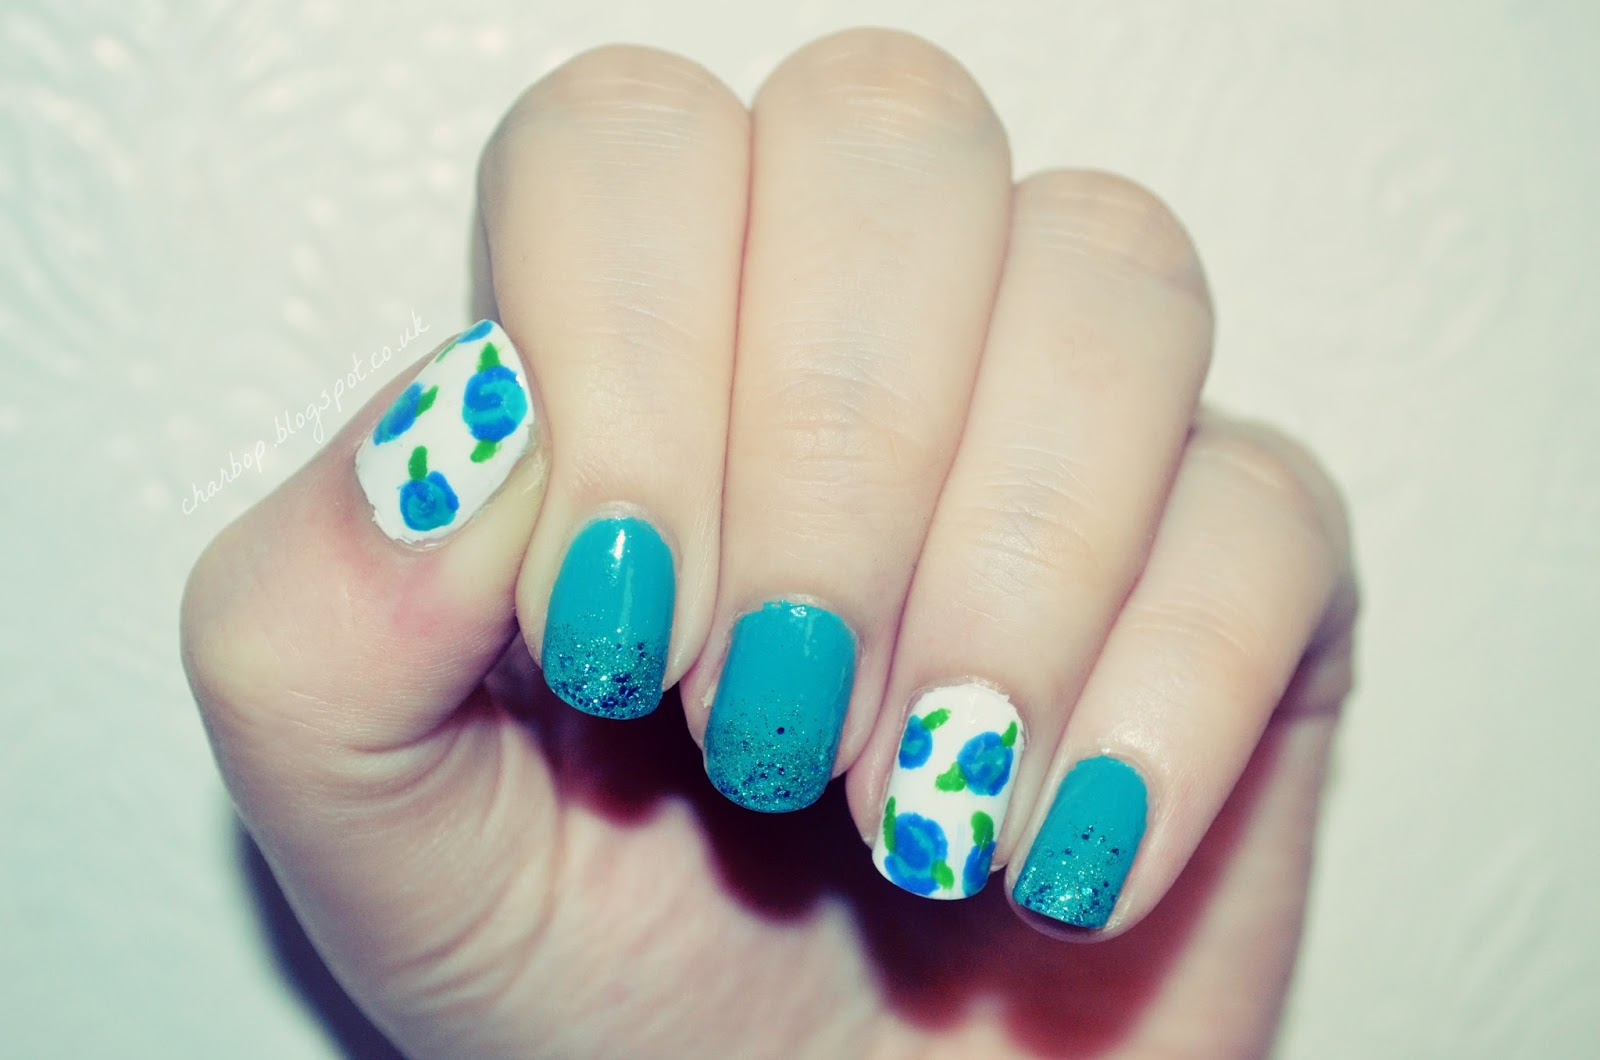 Where is my mind roses are blue vintage rose nail art part 1 roses are blue vintage rose nail art part 1 prinsesfo Gallery